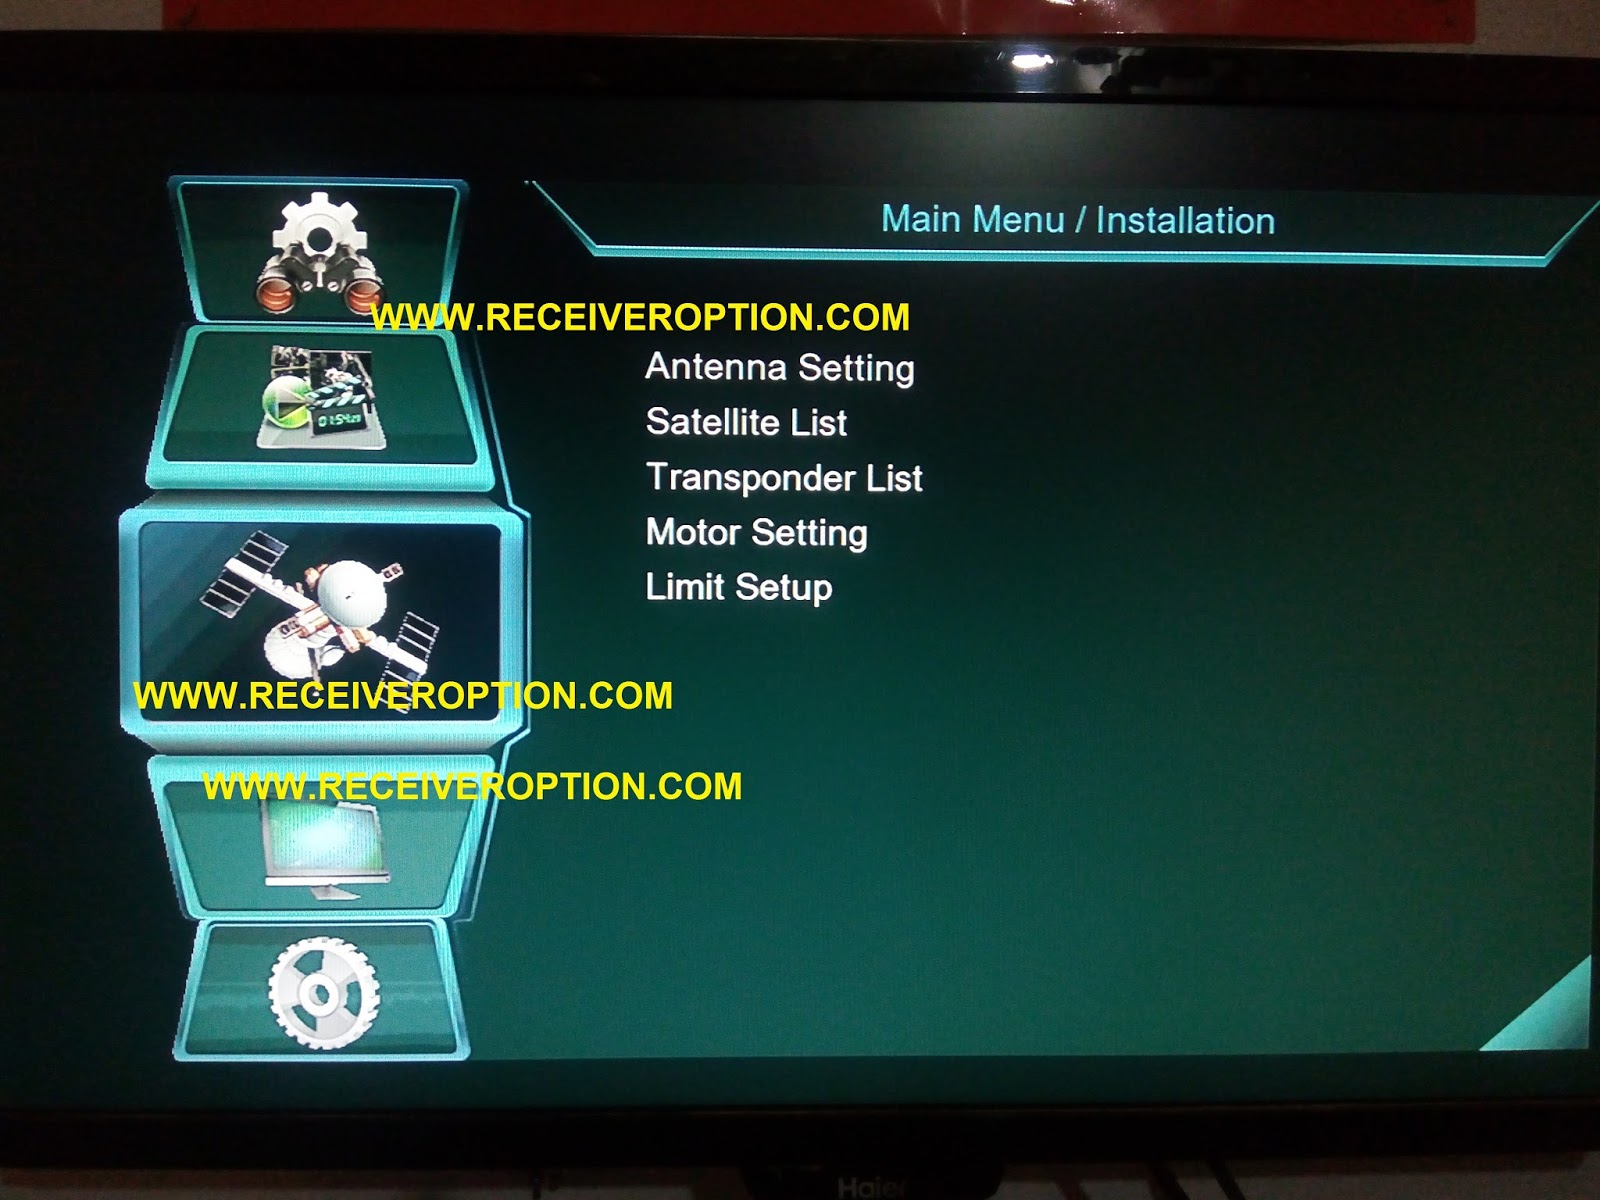 MULTI MEDIA HD RECEIVER NEW SOFTWARE - HOW TO ENTER BISS KEY